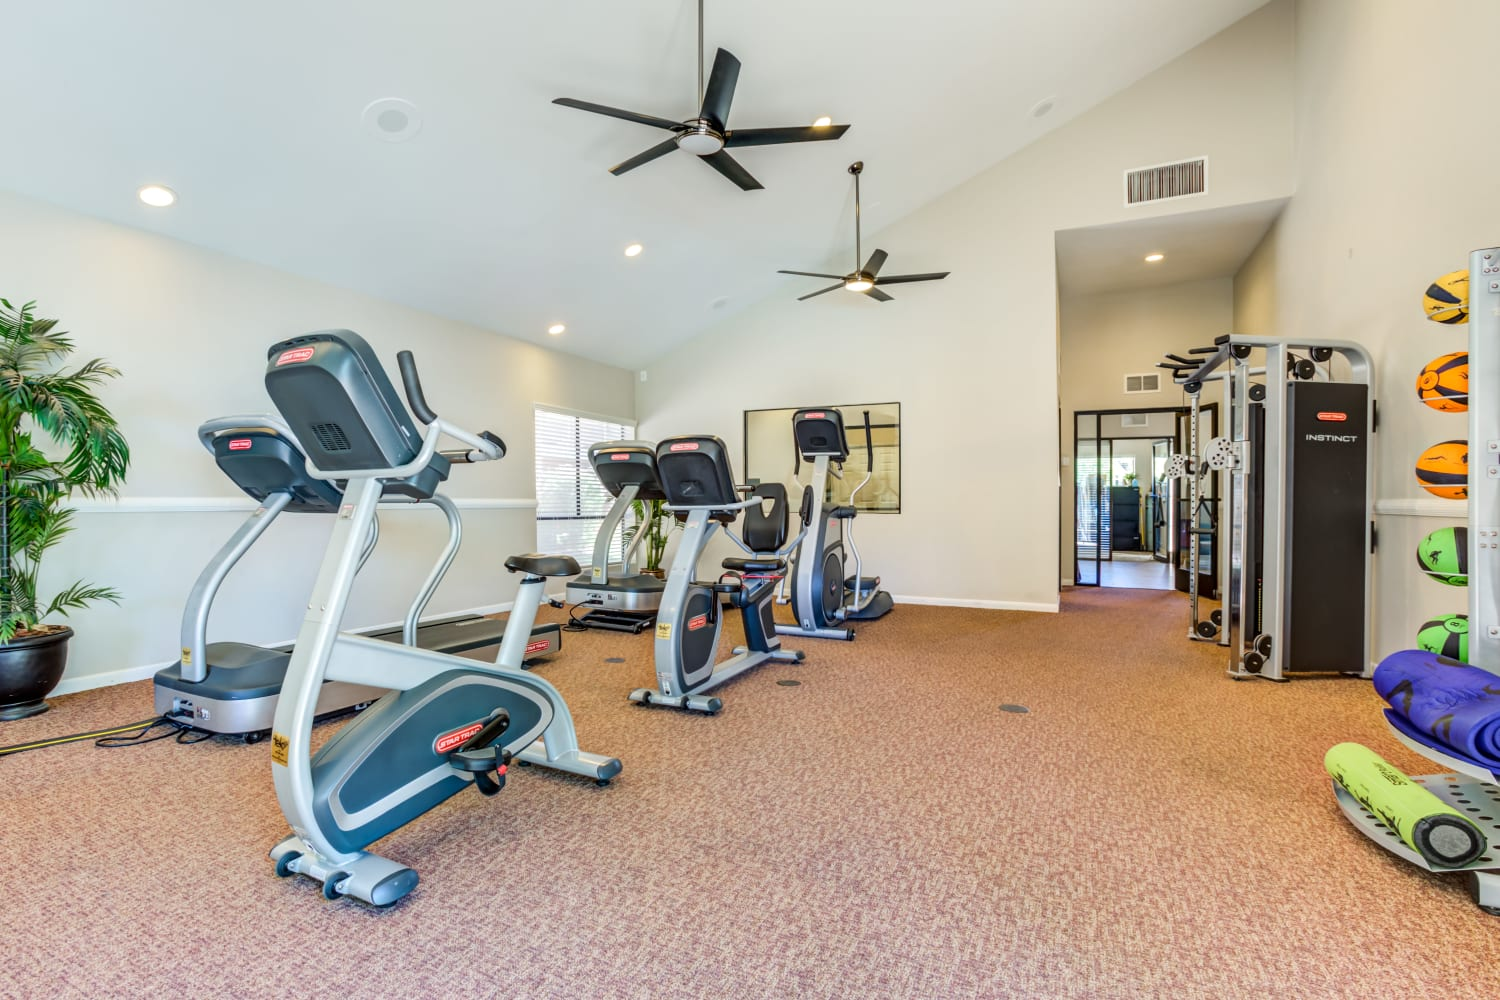 Fitness Center at Waterford Place Apartments in Mesa, Arizona